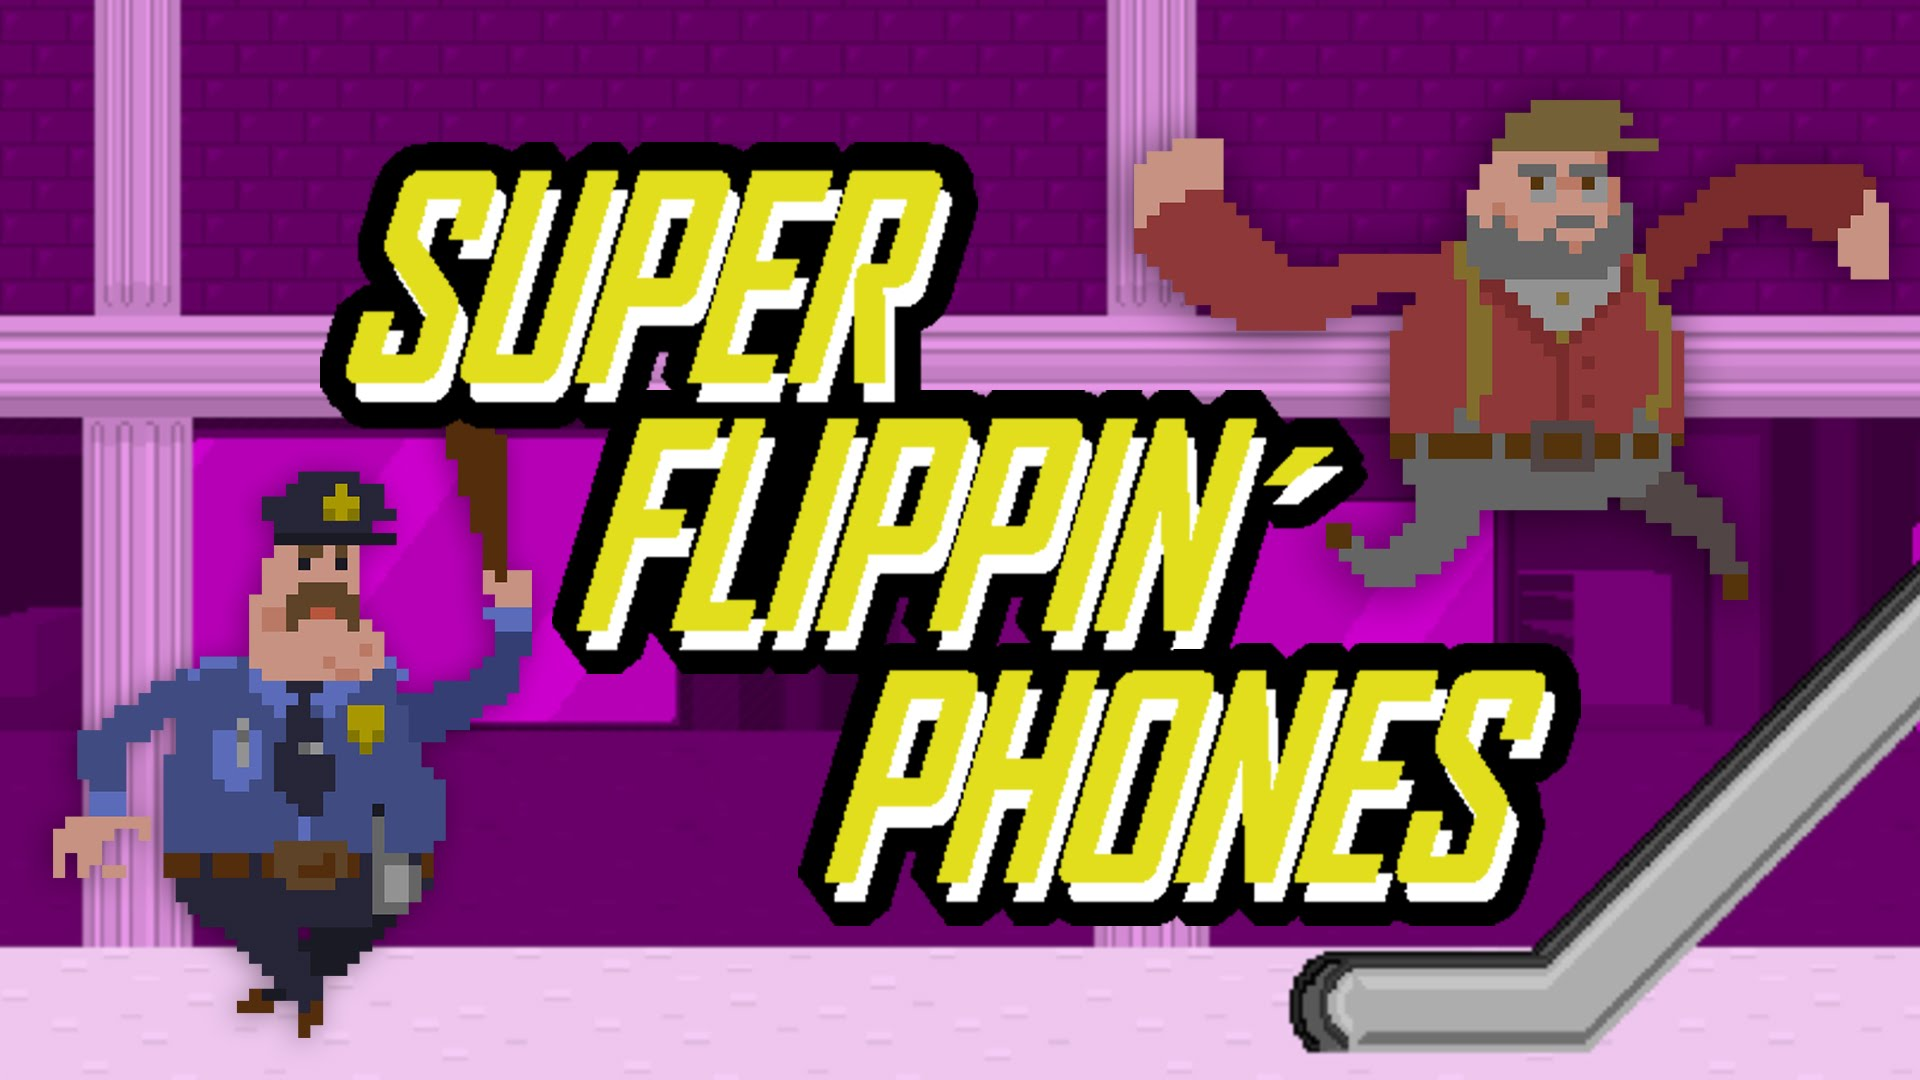 'Super Flippin' Phones' is mindless, phone-smashing, mall-crawling mayhem